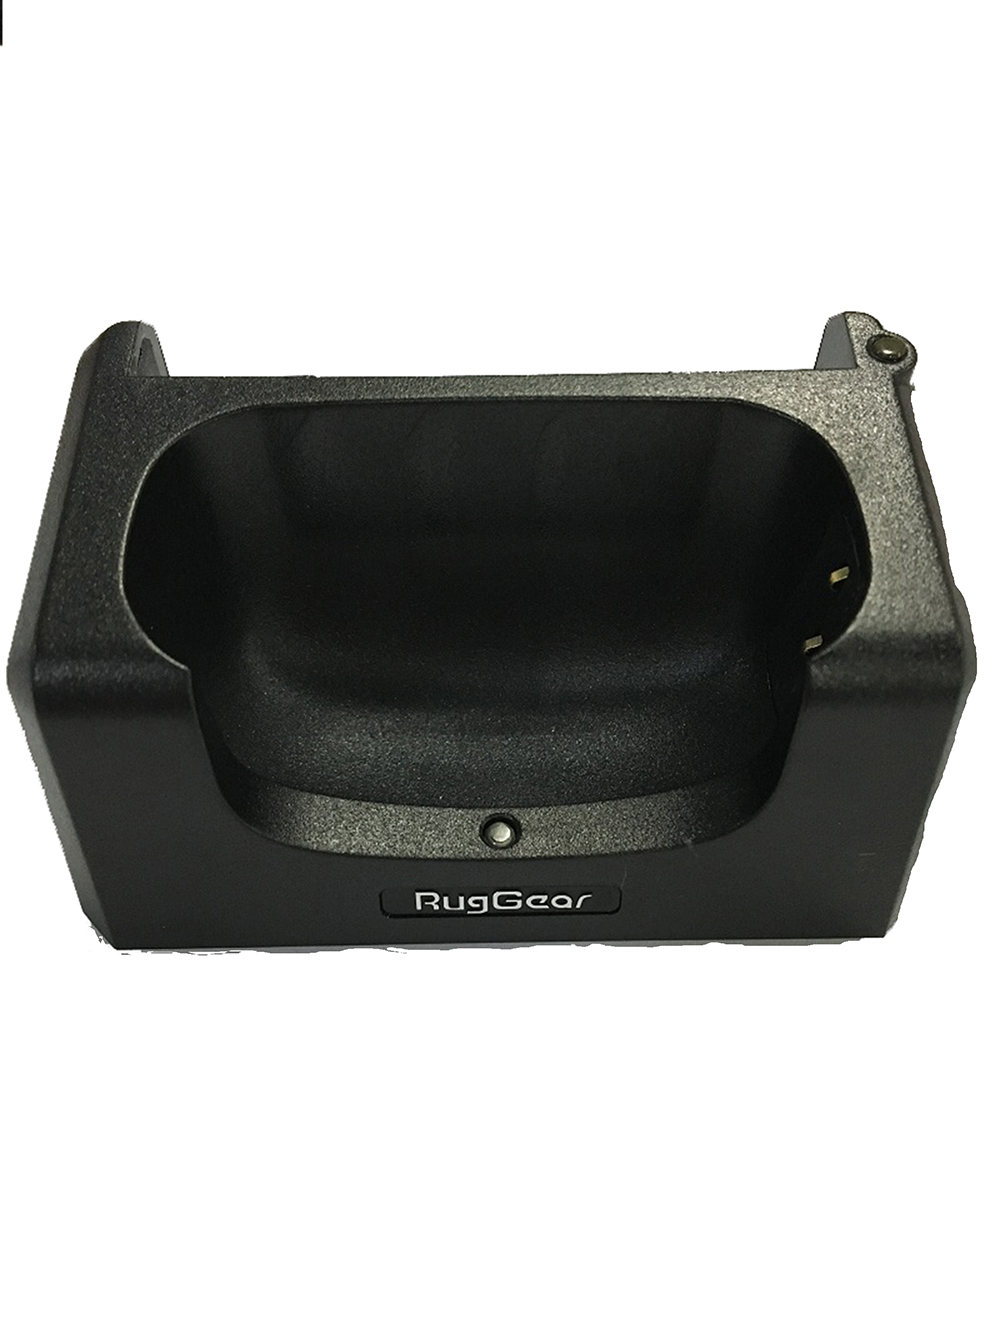 RG310charging stand desk charger pouch and charging stand for RugGear RG310 5V 1A